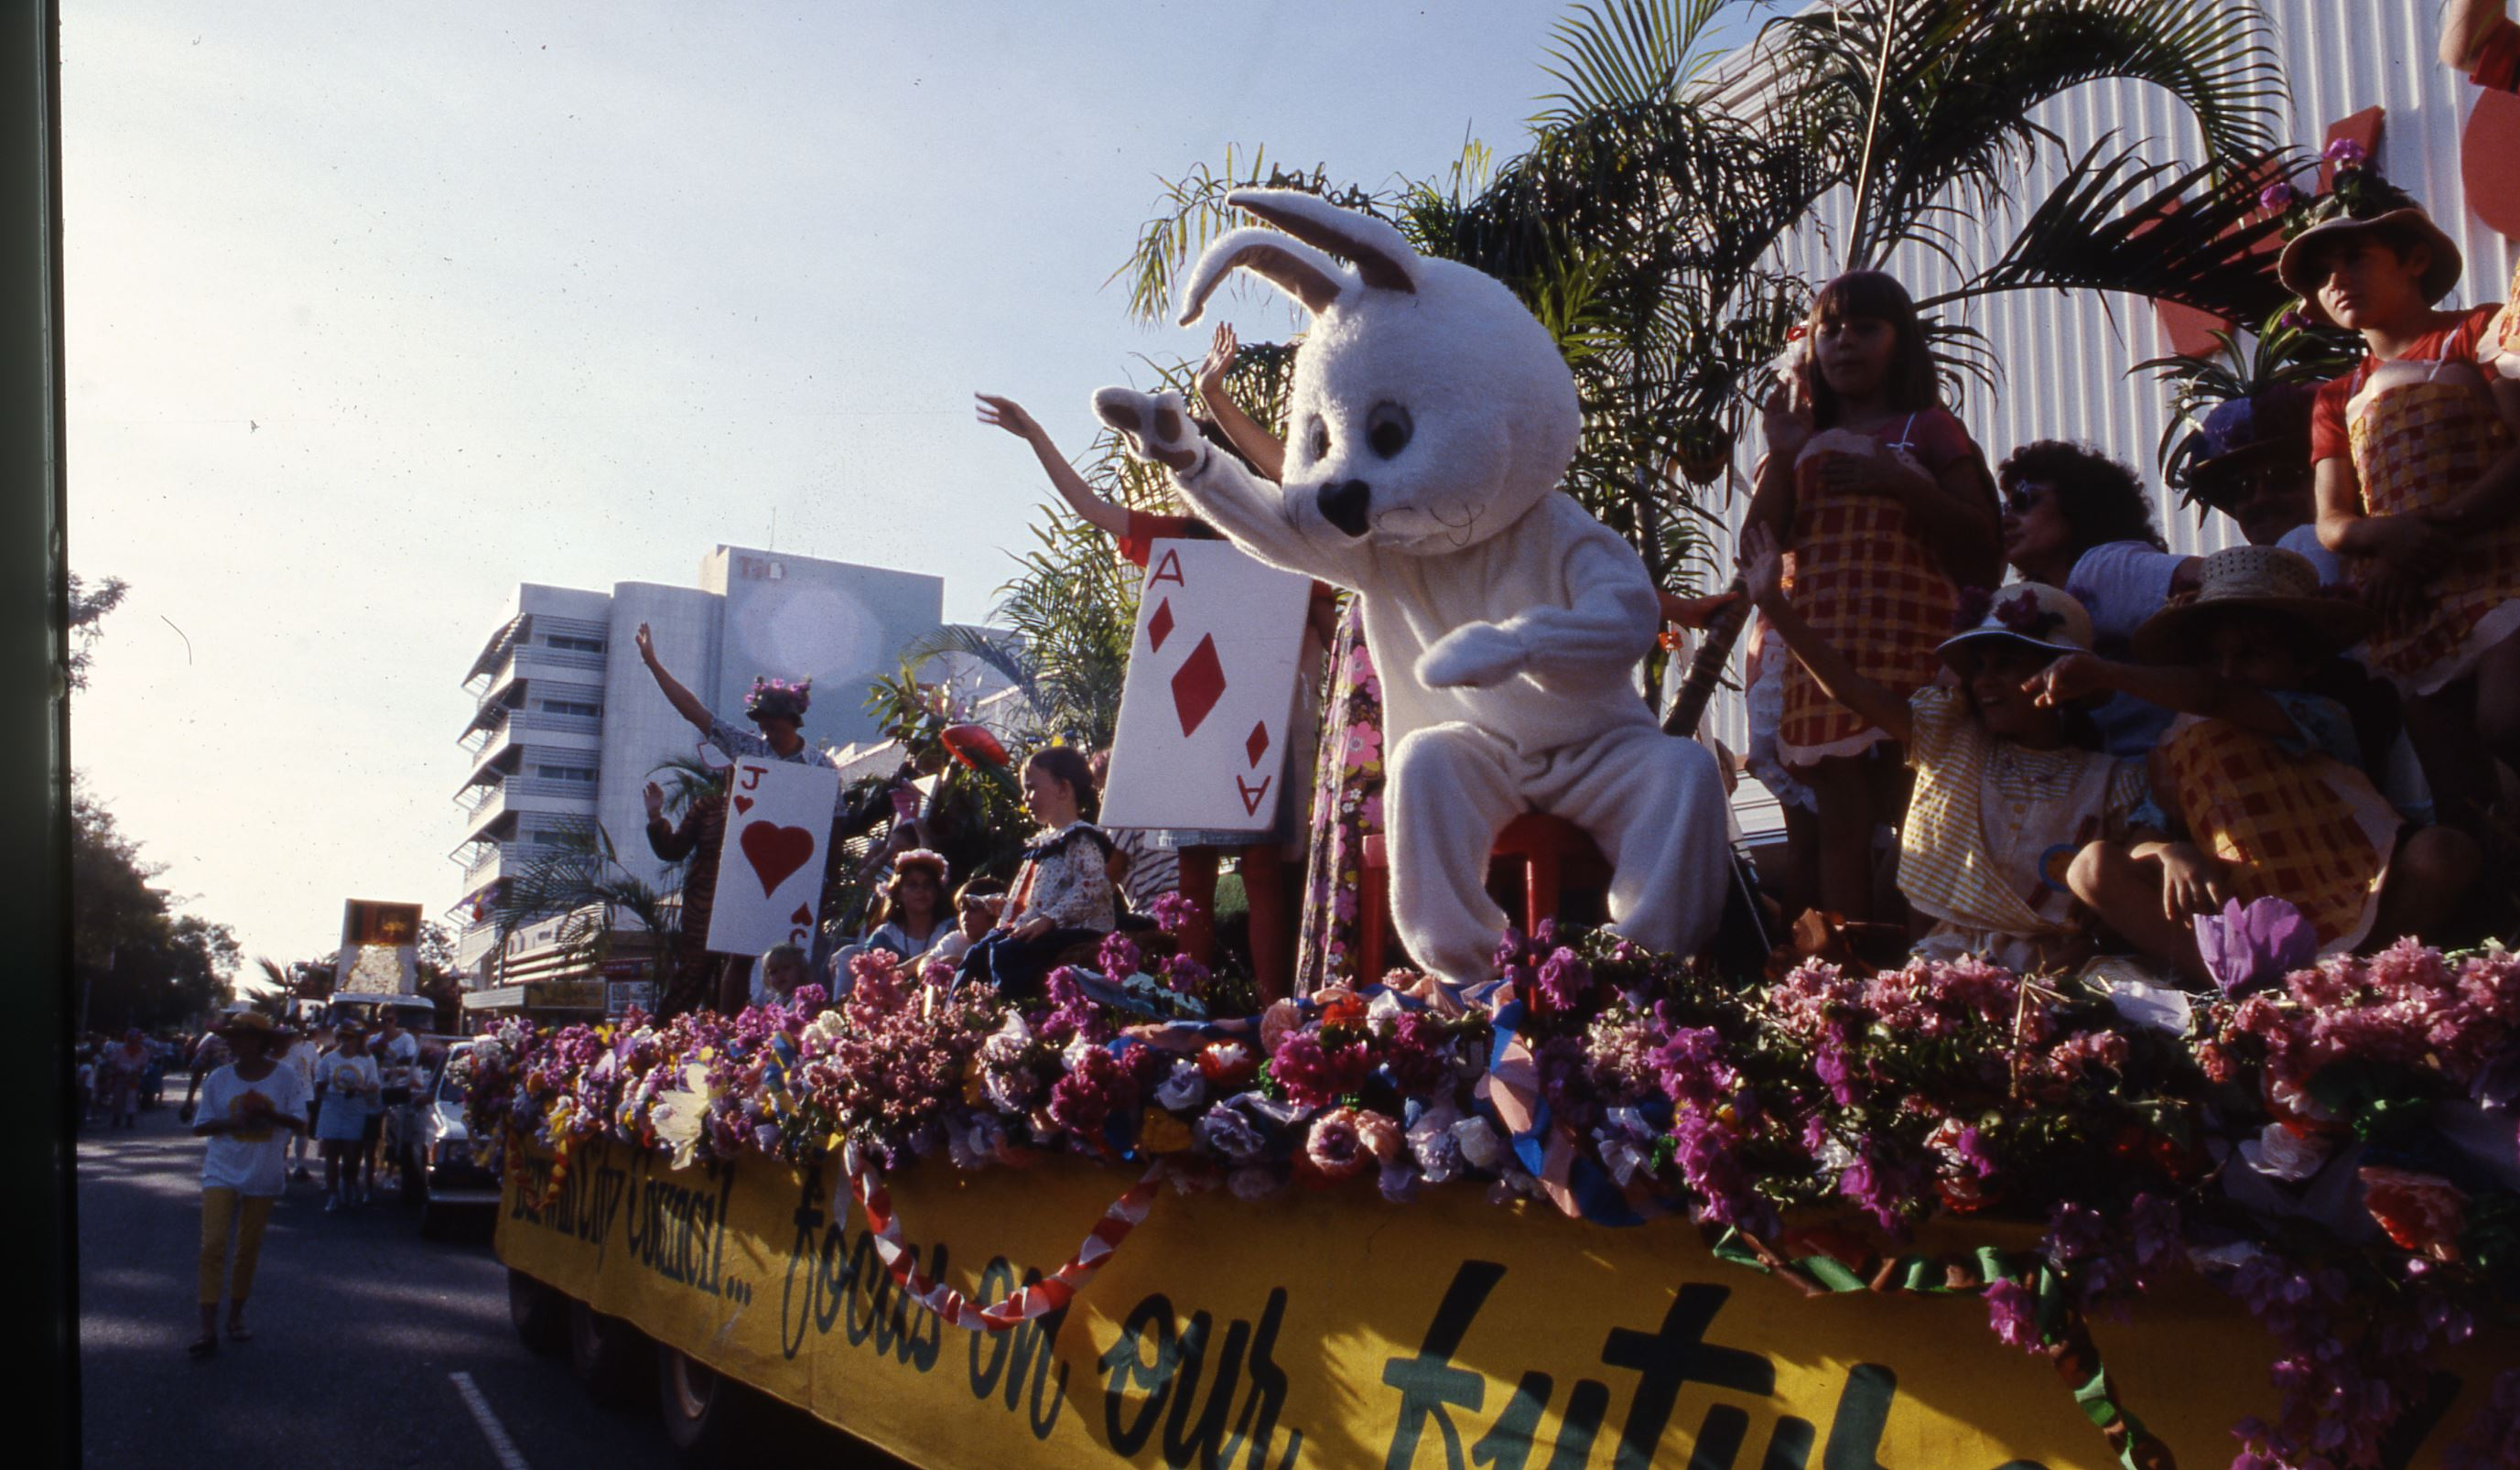 [Bougainvillea Festival Parade, 13 June 1987] <br />Image courtesy of Northern Territory Archives Service, Department of Chief Minister, NTRS 3822 P1, Folder 37 Slide 315.